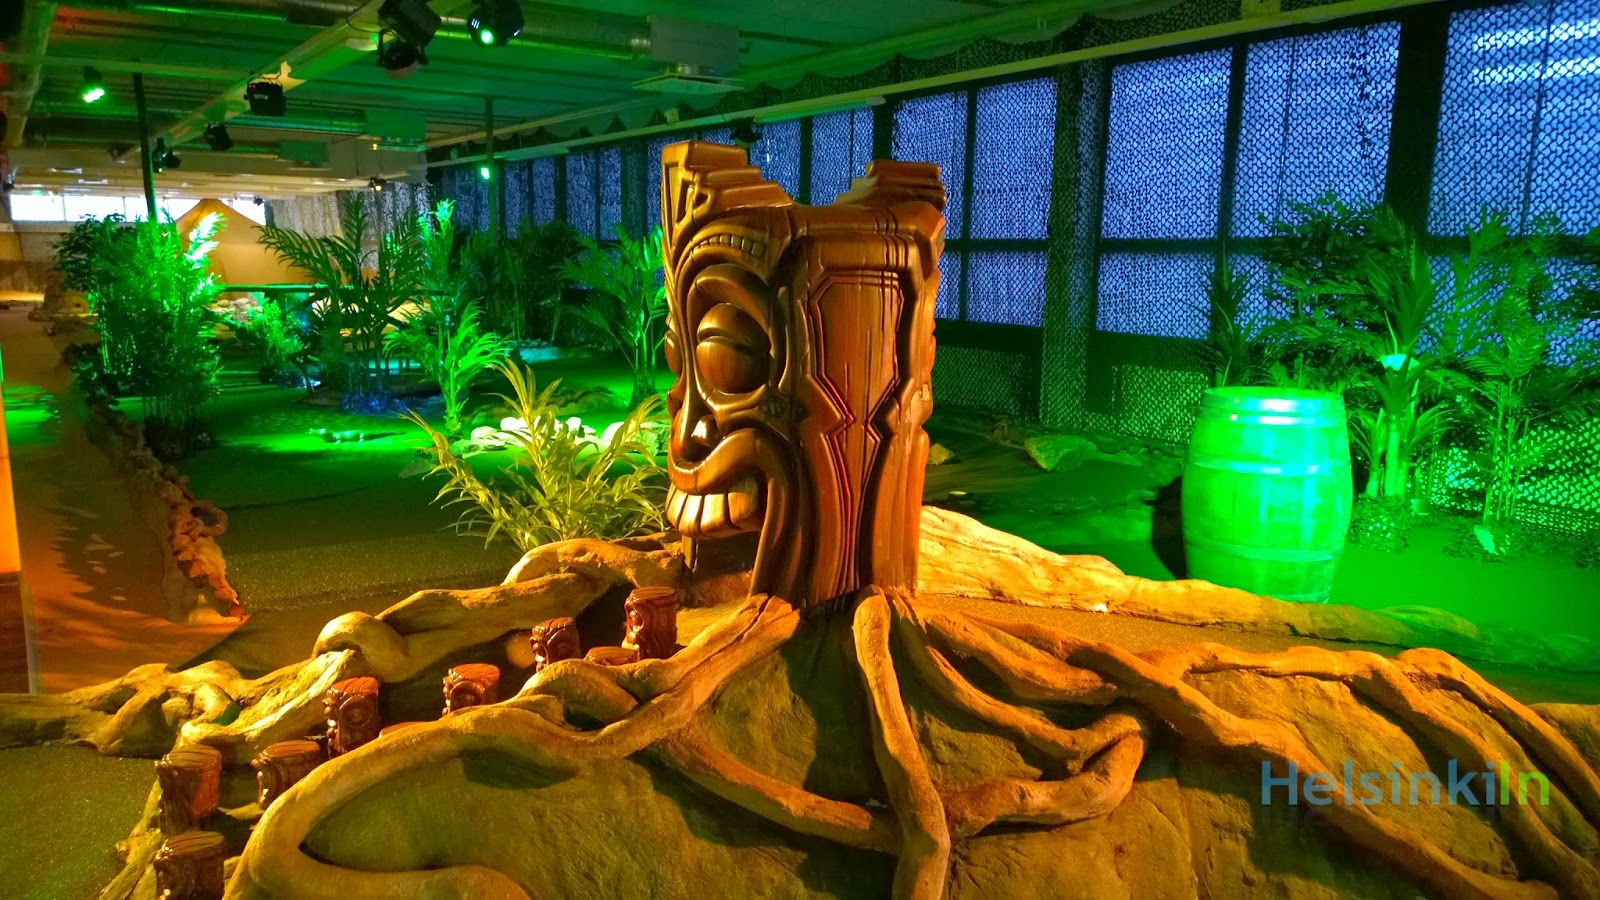 FunGo indoor miniature golf